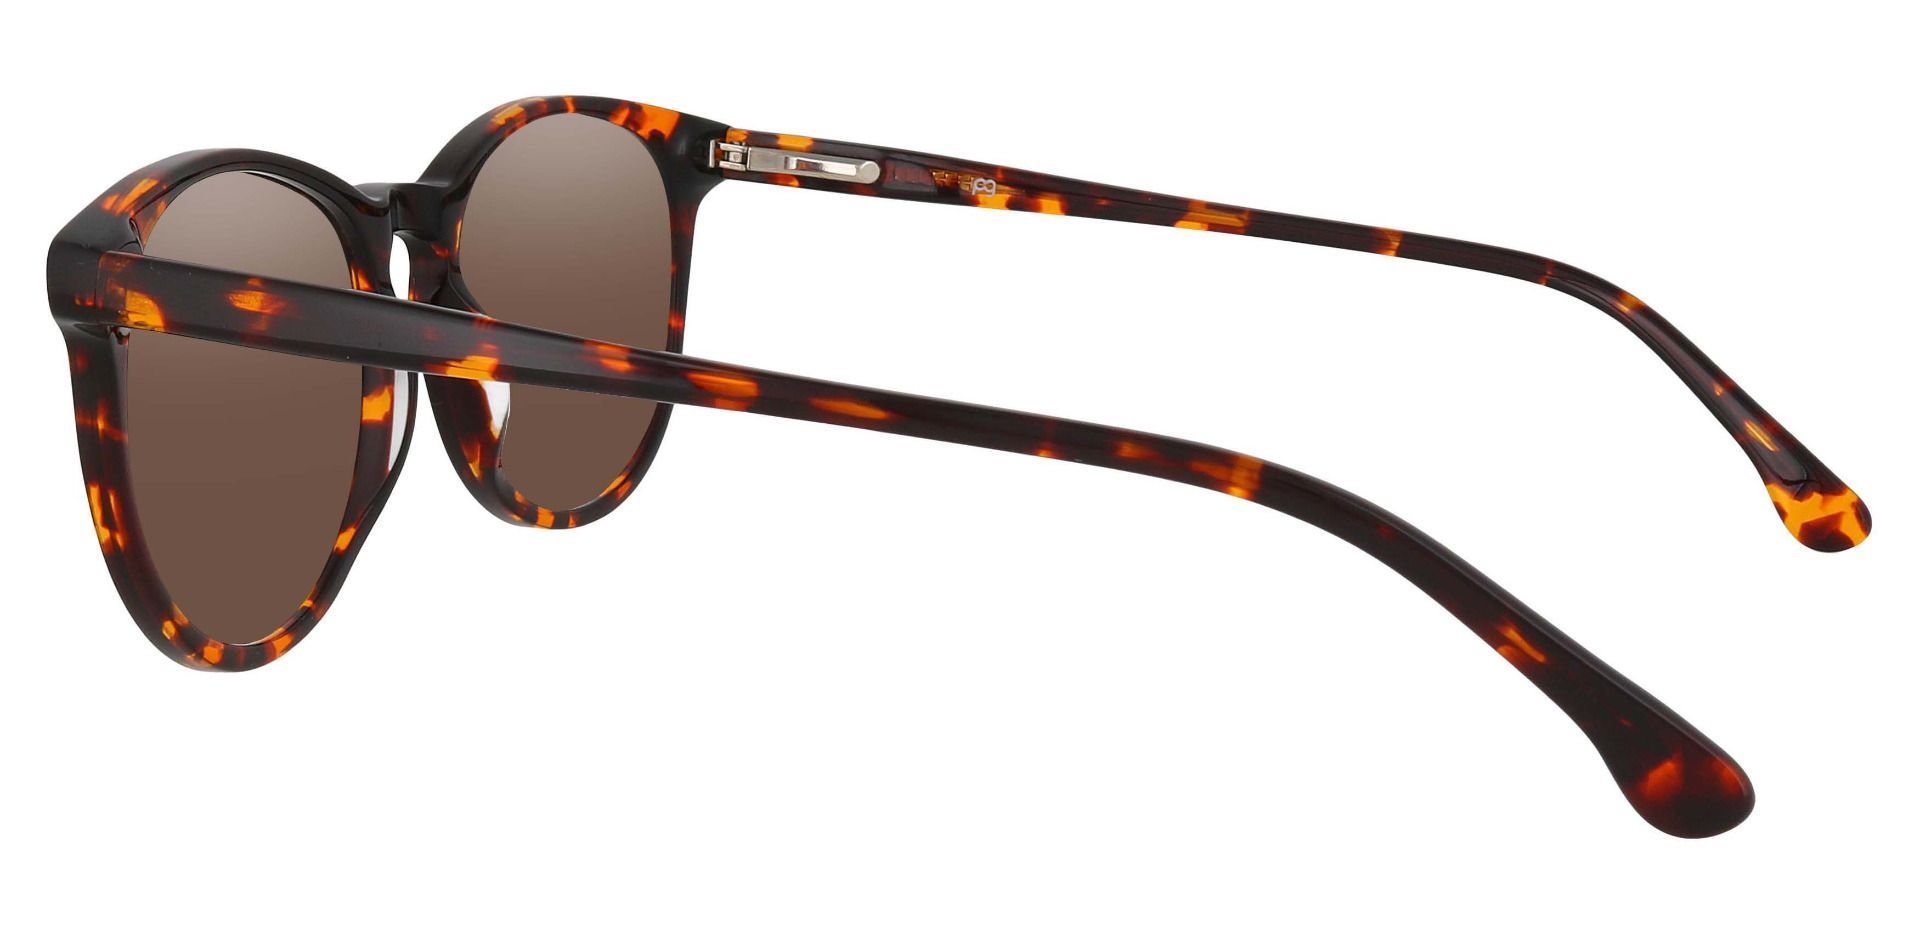 Carriage Round Prescription Sunglasses - Tortoise Frame With Brown Lenses